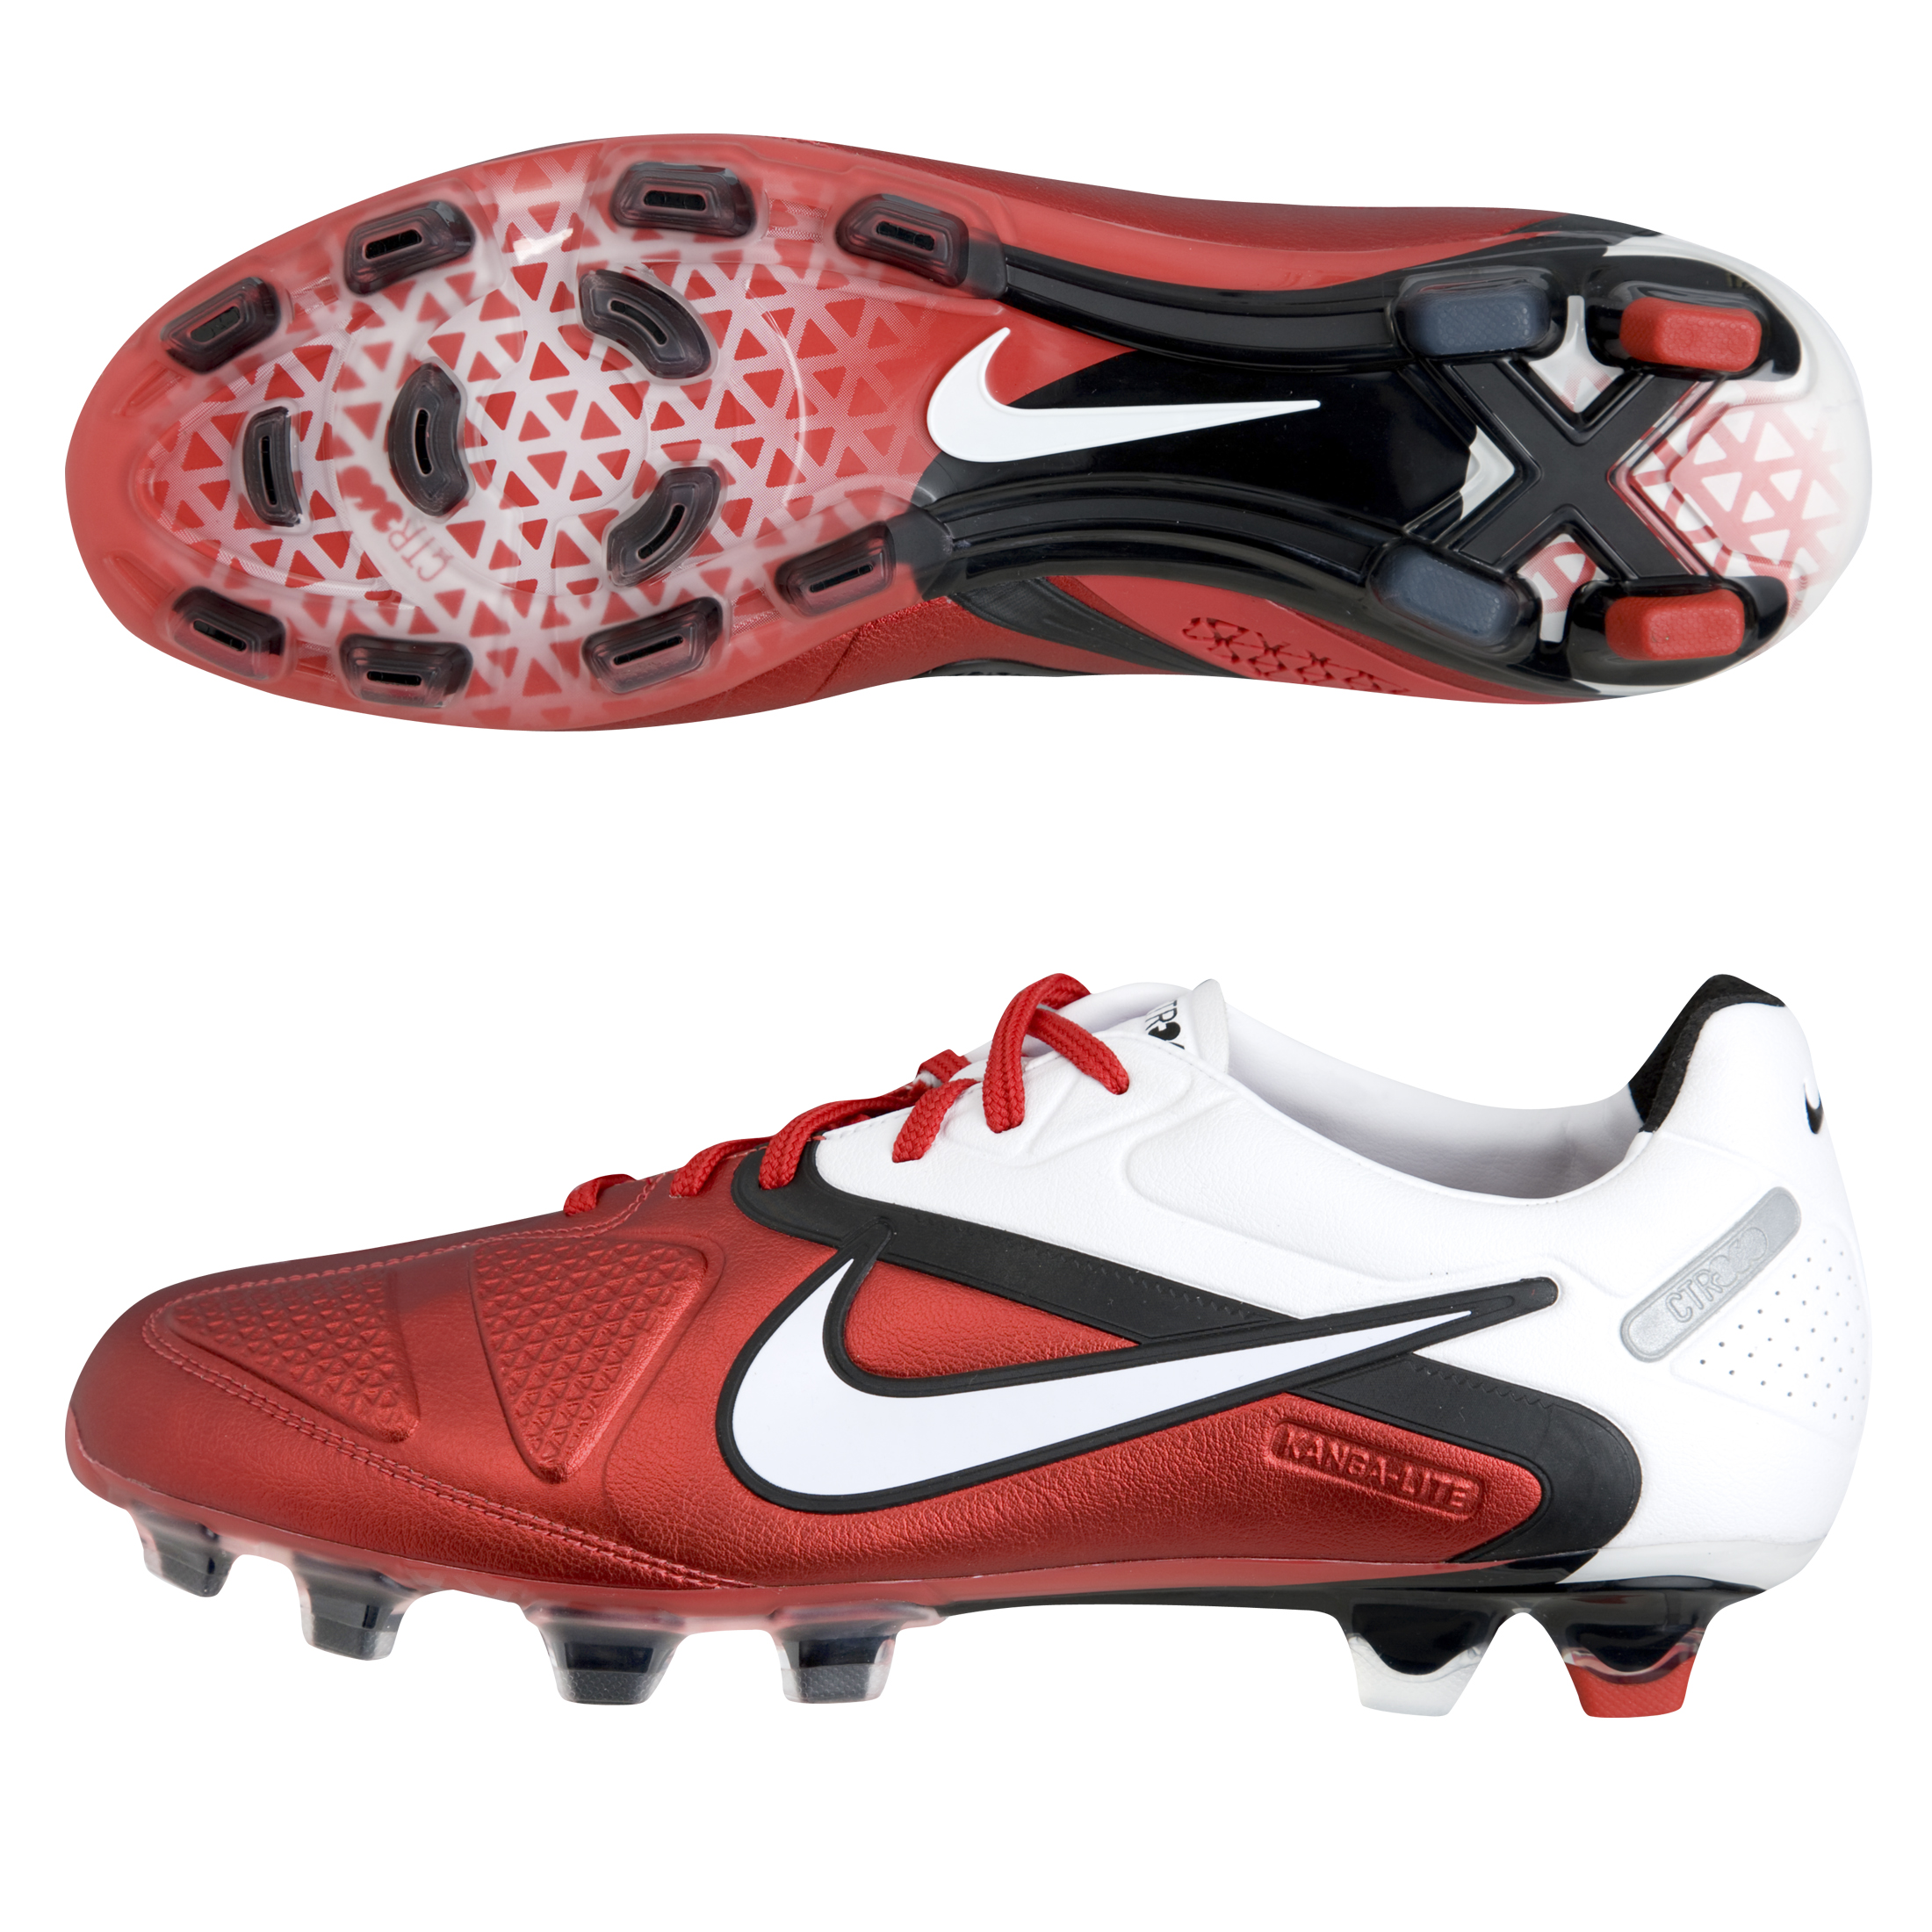 Nike CTR360 Maestri II Firm Ground Football Boots - Challenge Red/White/Black.